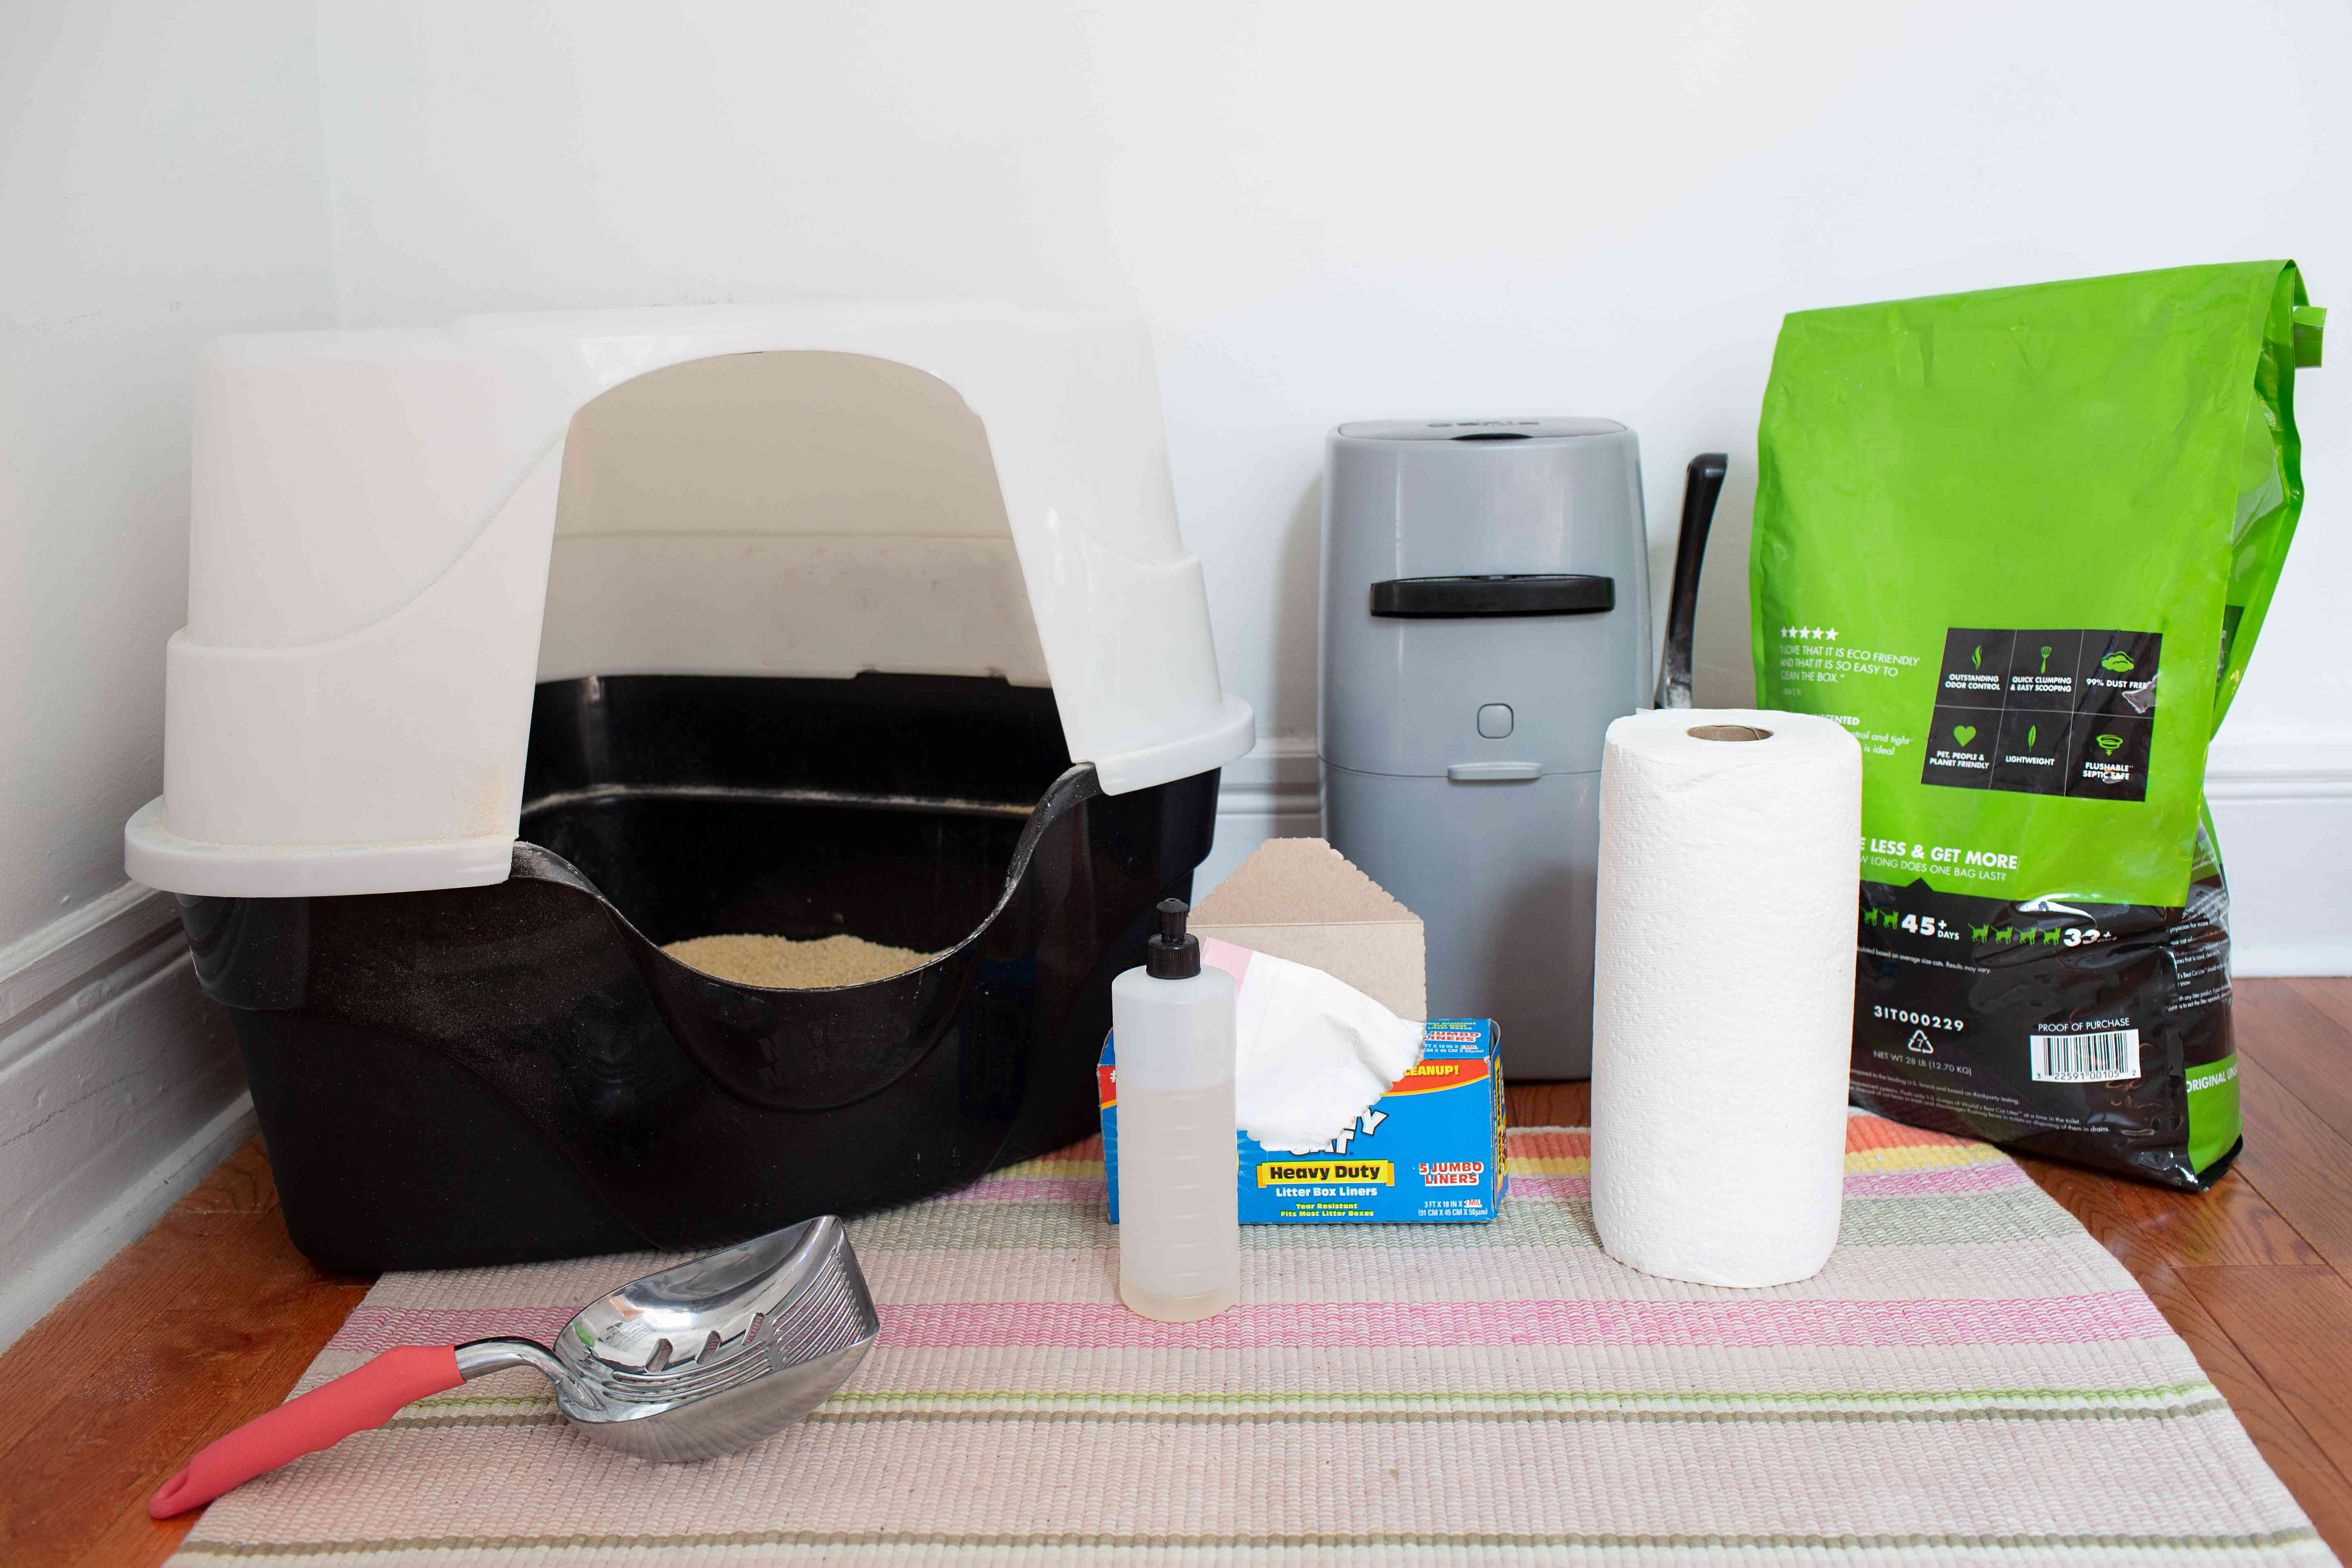 materials for setting up and cleaning a litter box